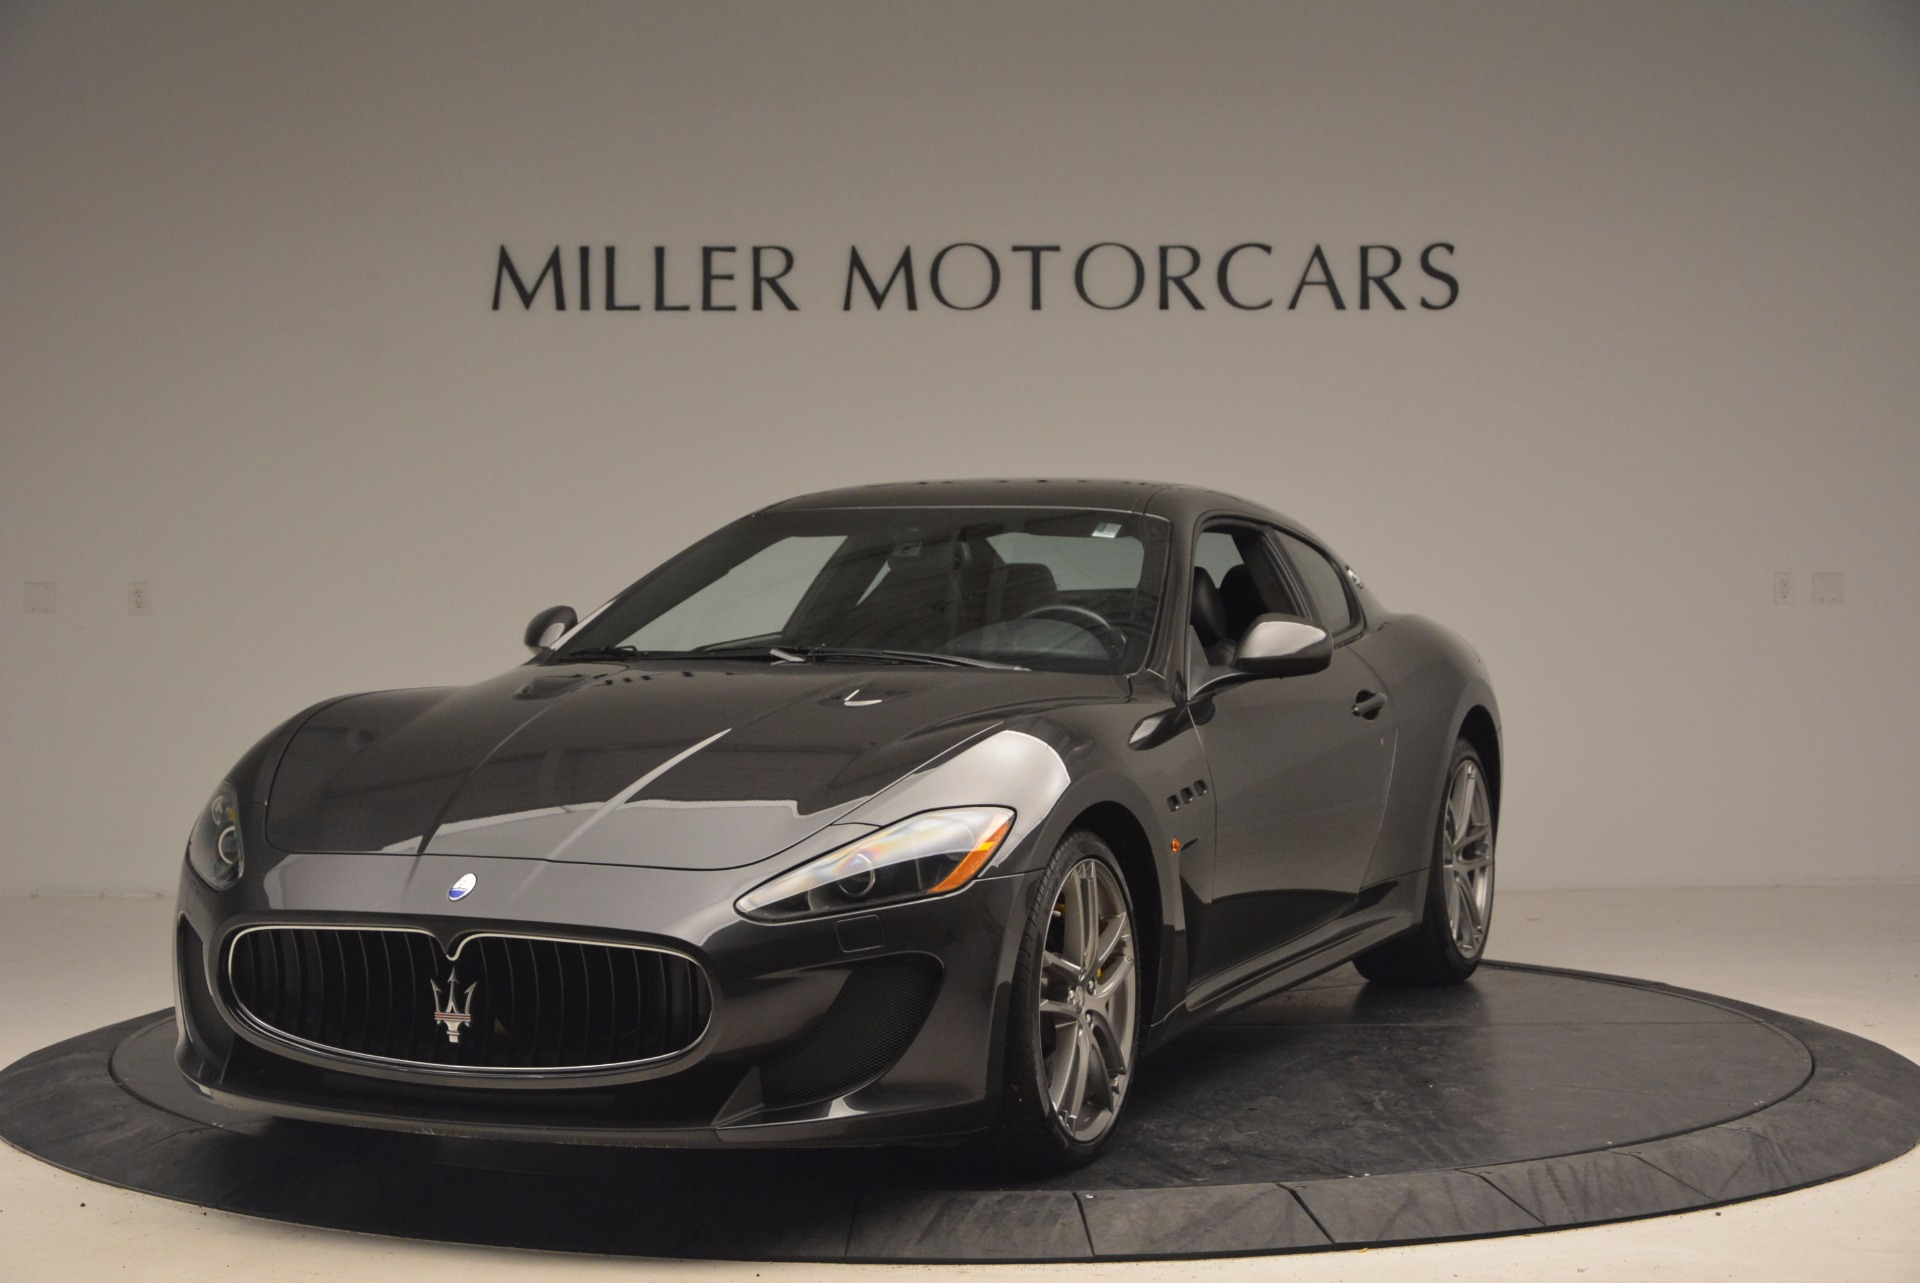 Used 2012 Maserati GranTurismo MC for sale Sold at Aston Martin of Greenwich in Greenwich CT 06830 1